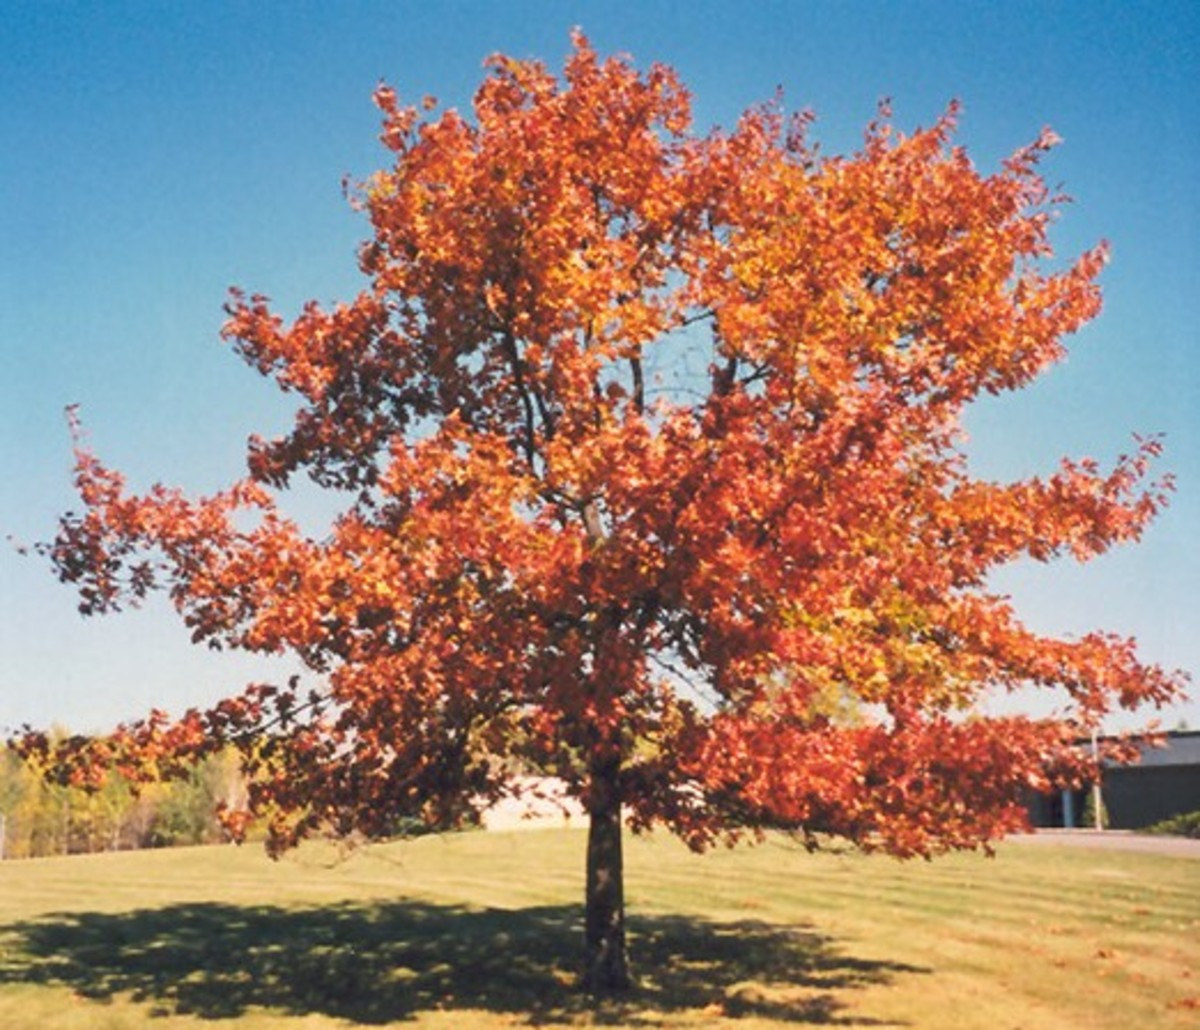 Red oak in the beginning of autumn